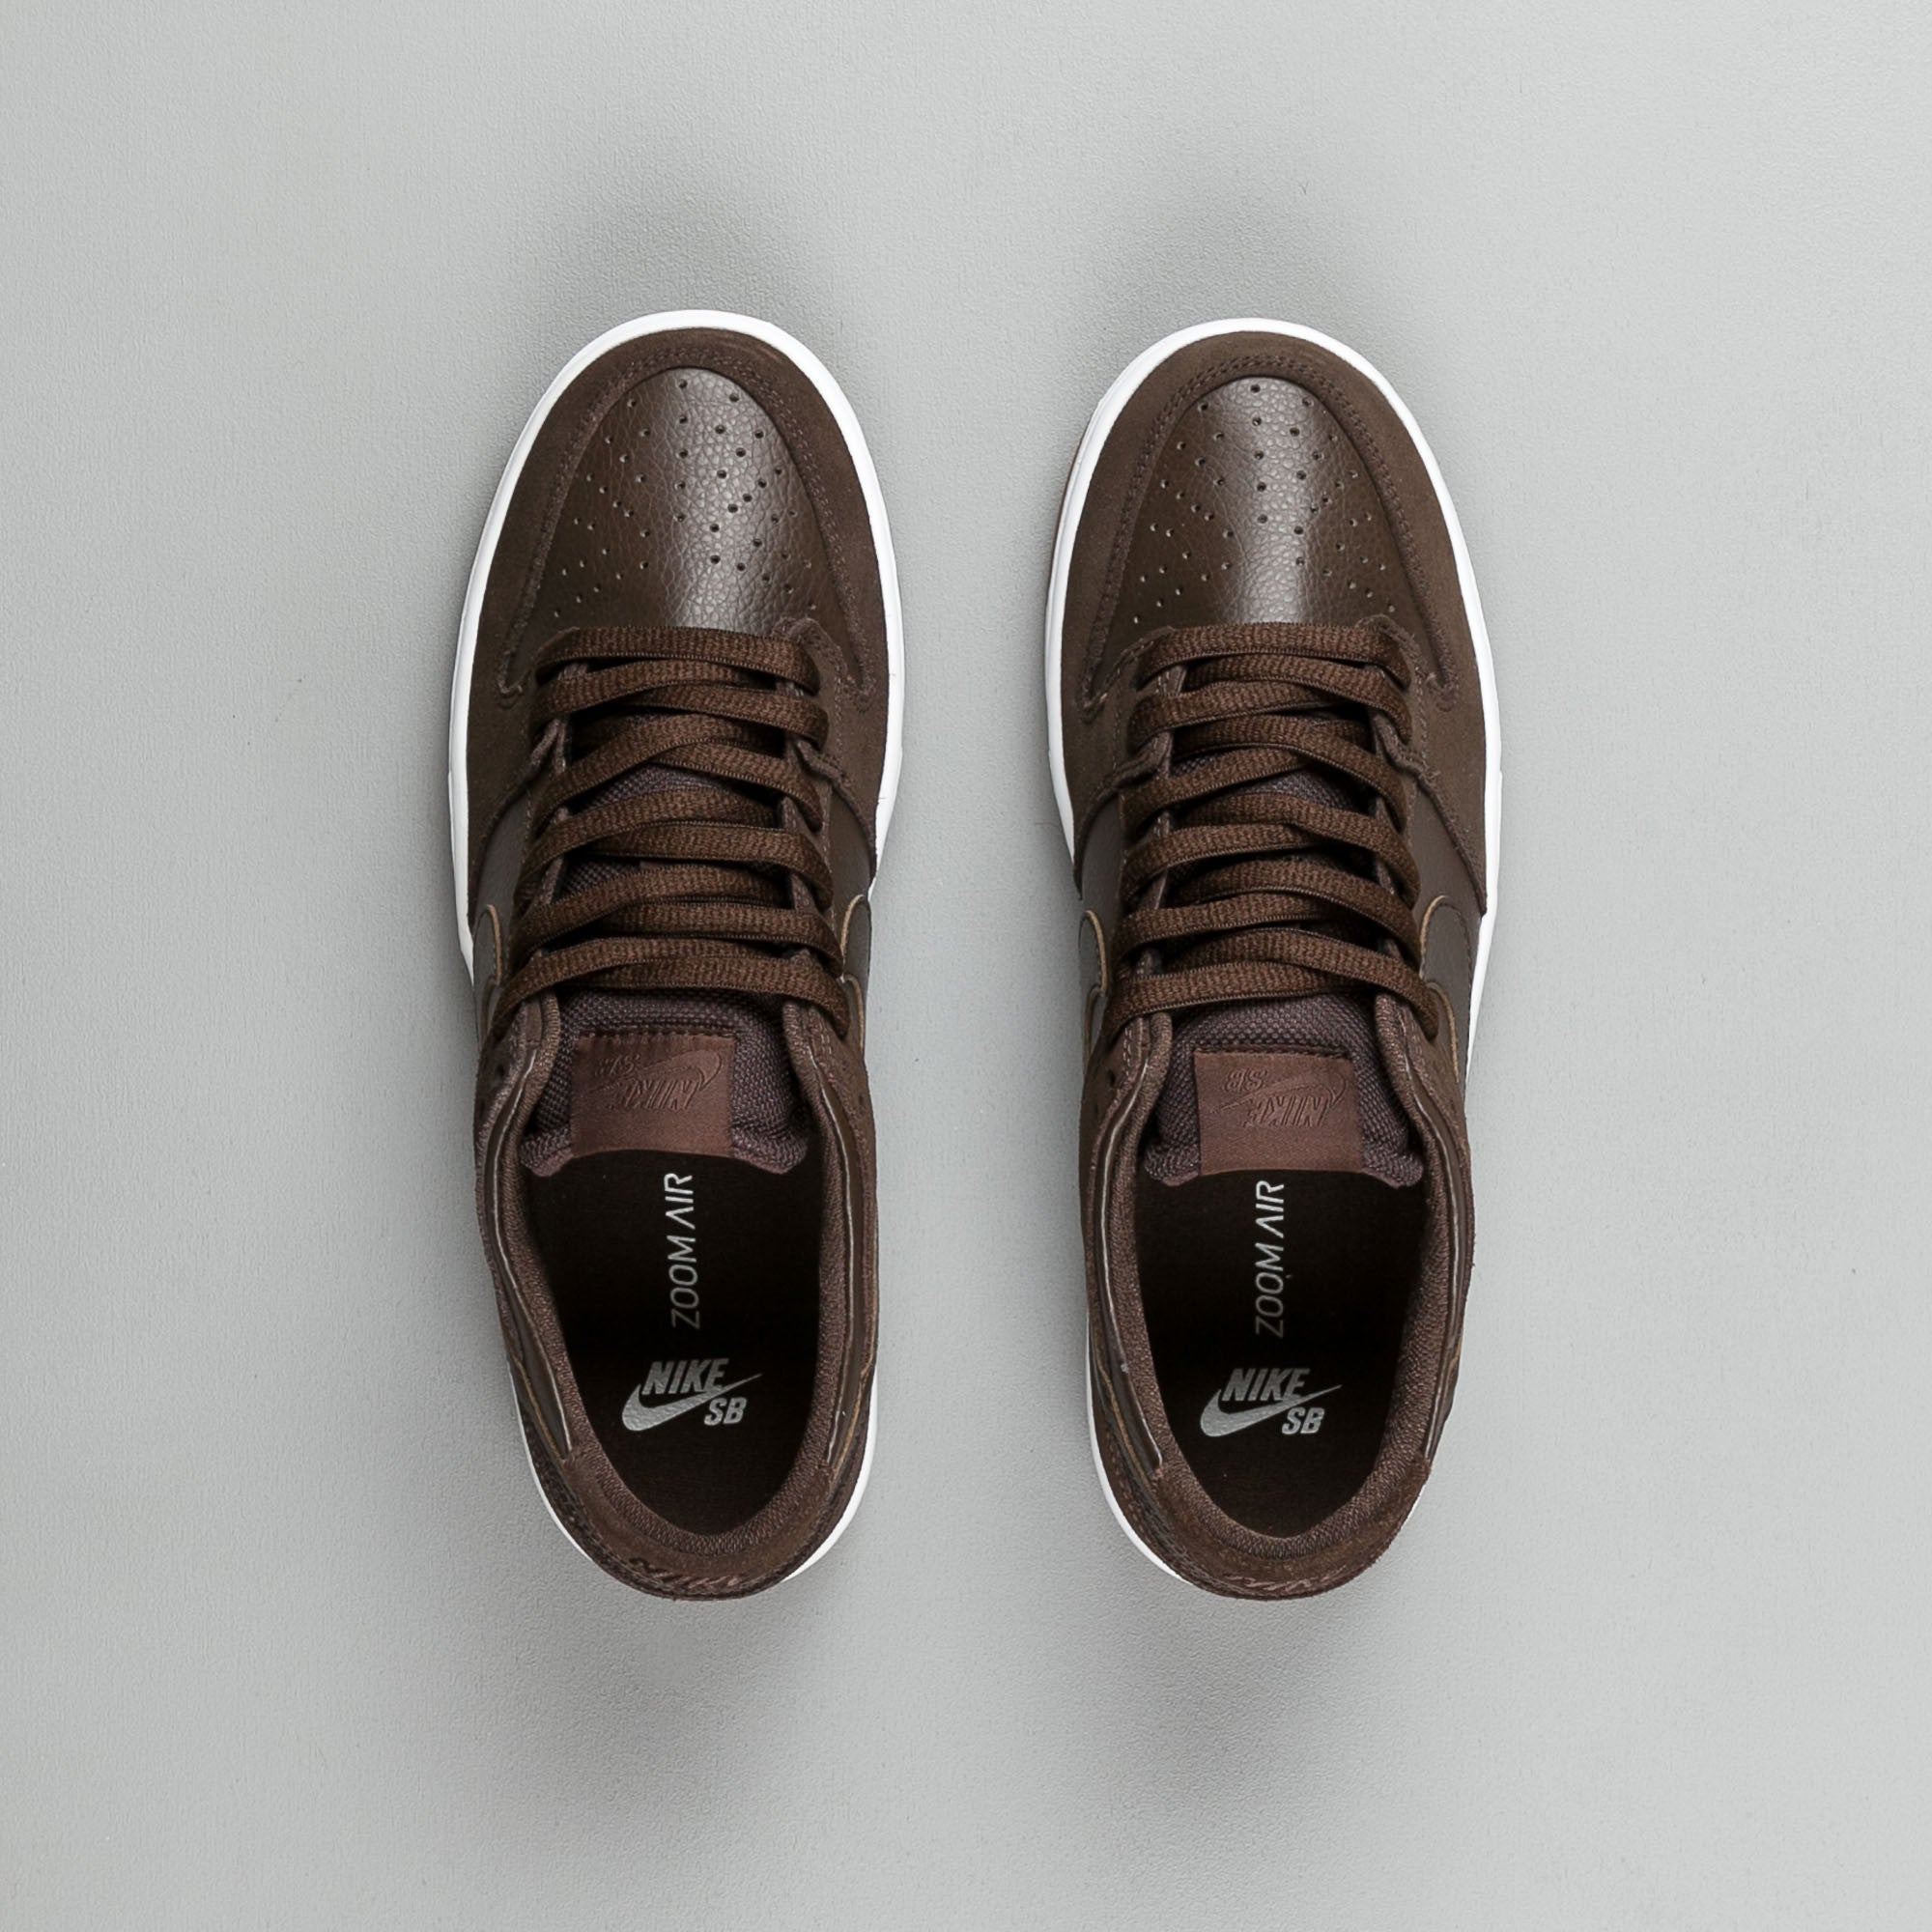 cheap for discount d674a a9465 Nike SB Dunk Low Pro Ishod Wair Shoes - Baroque Brown   Baroque Brown -  White ...